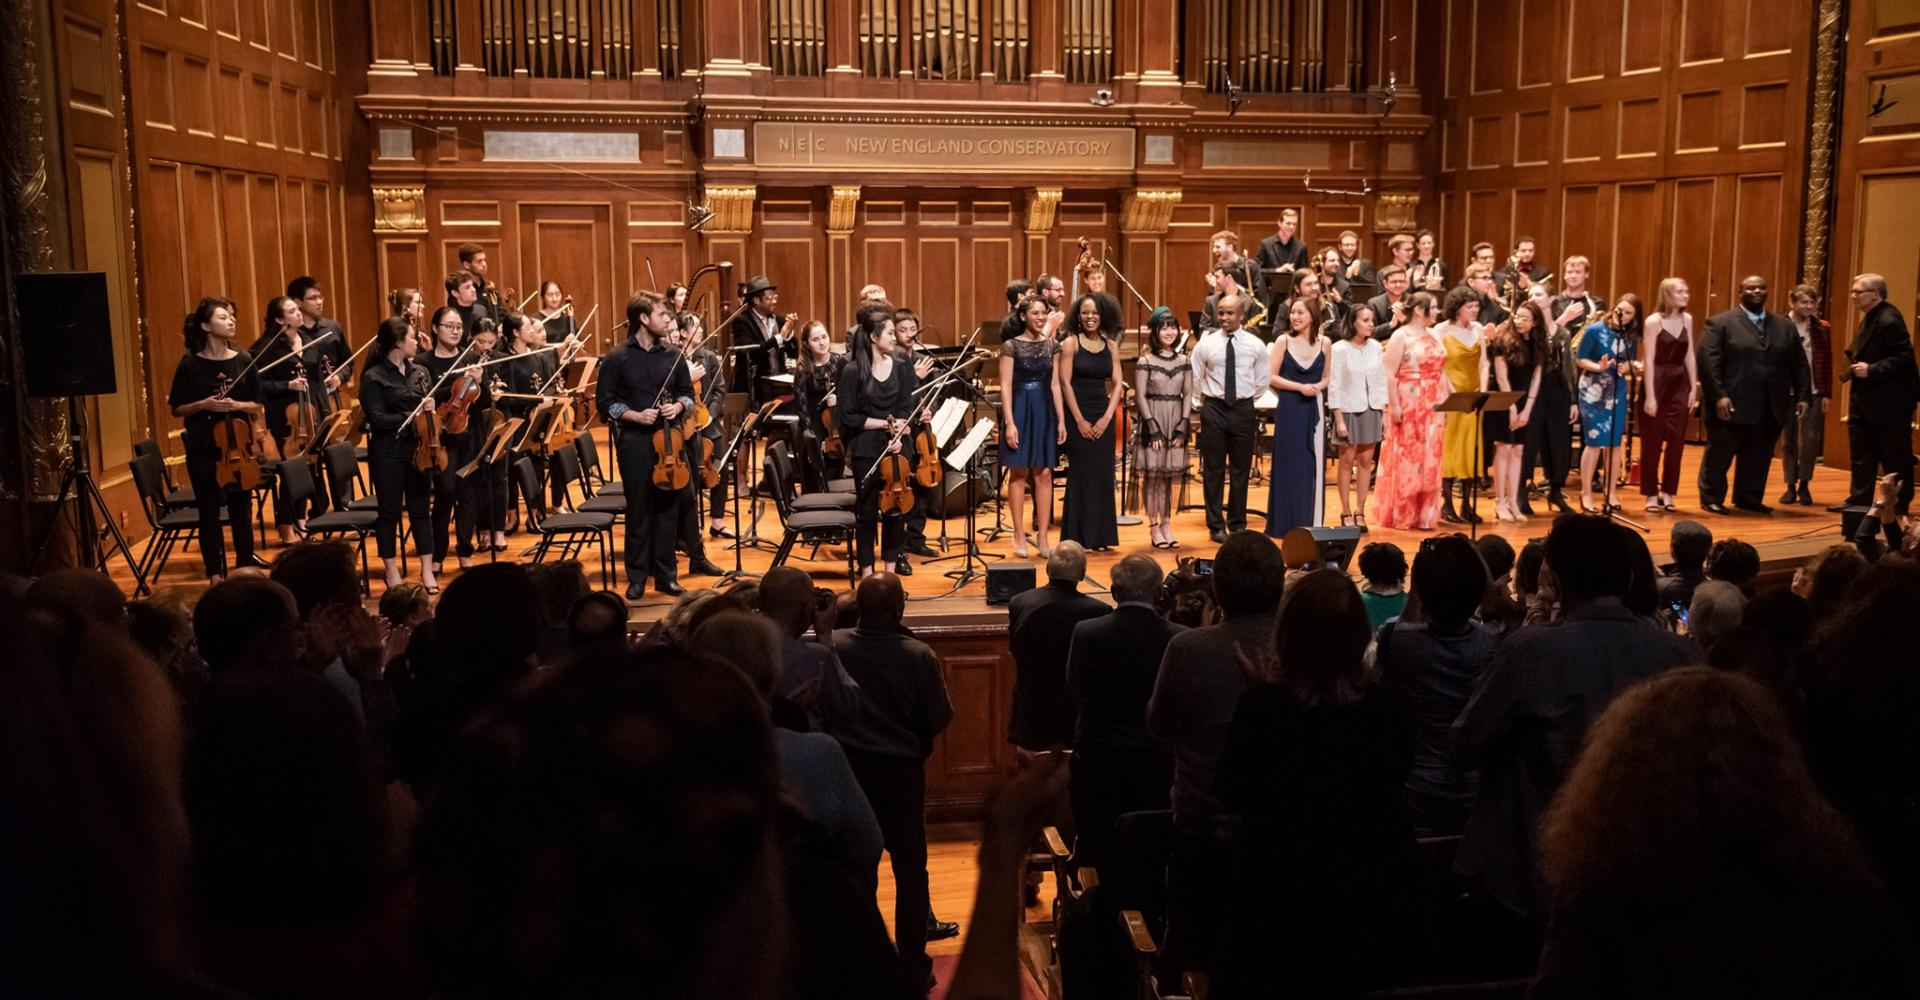 Performers take a bow in Jordan Hall while the audience stands and applauds